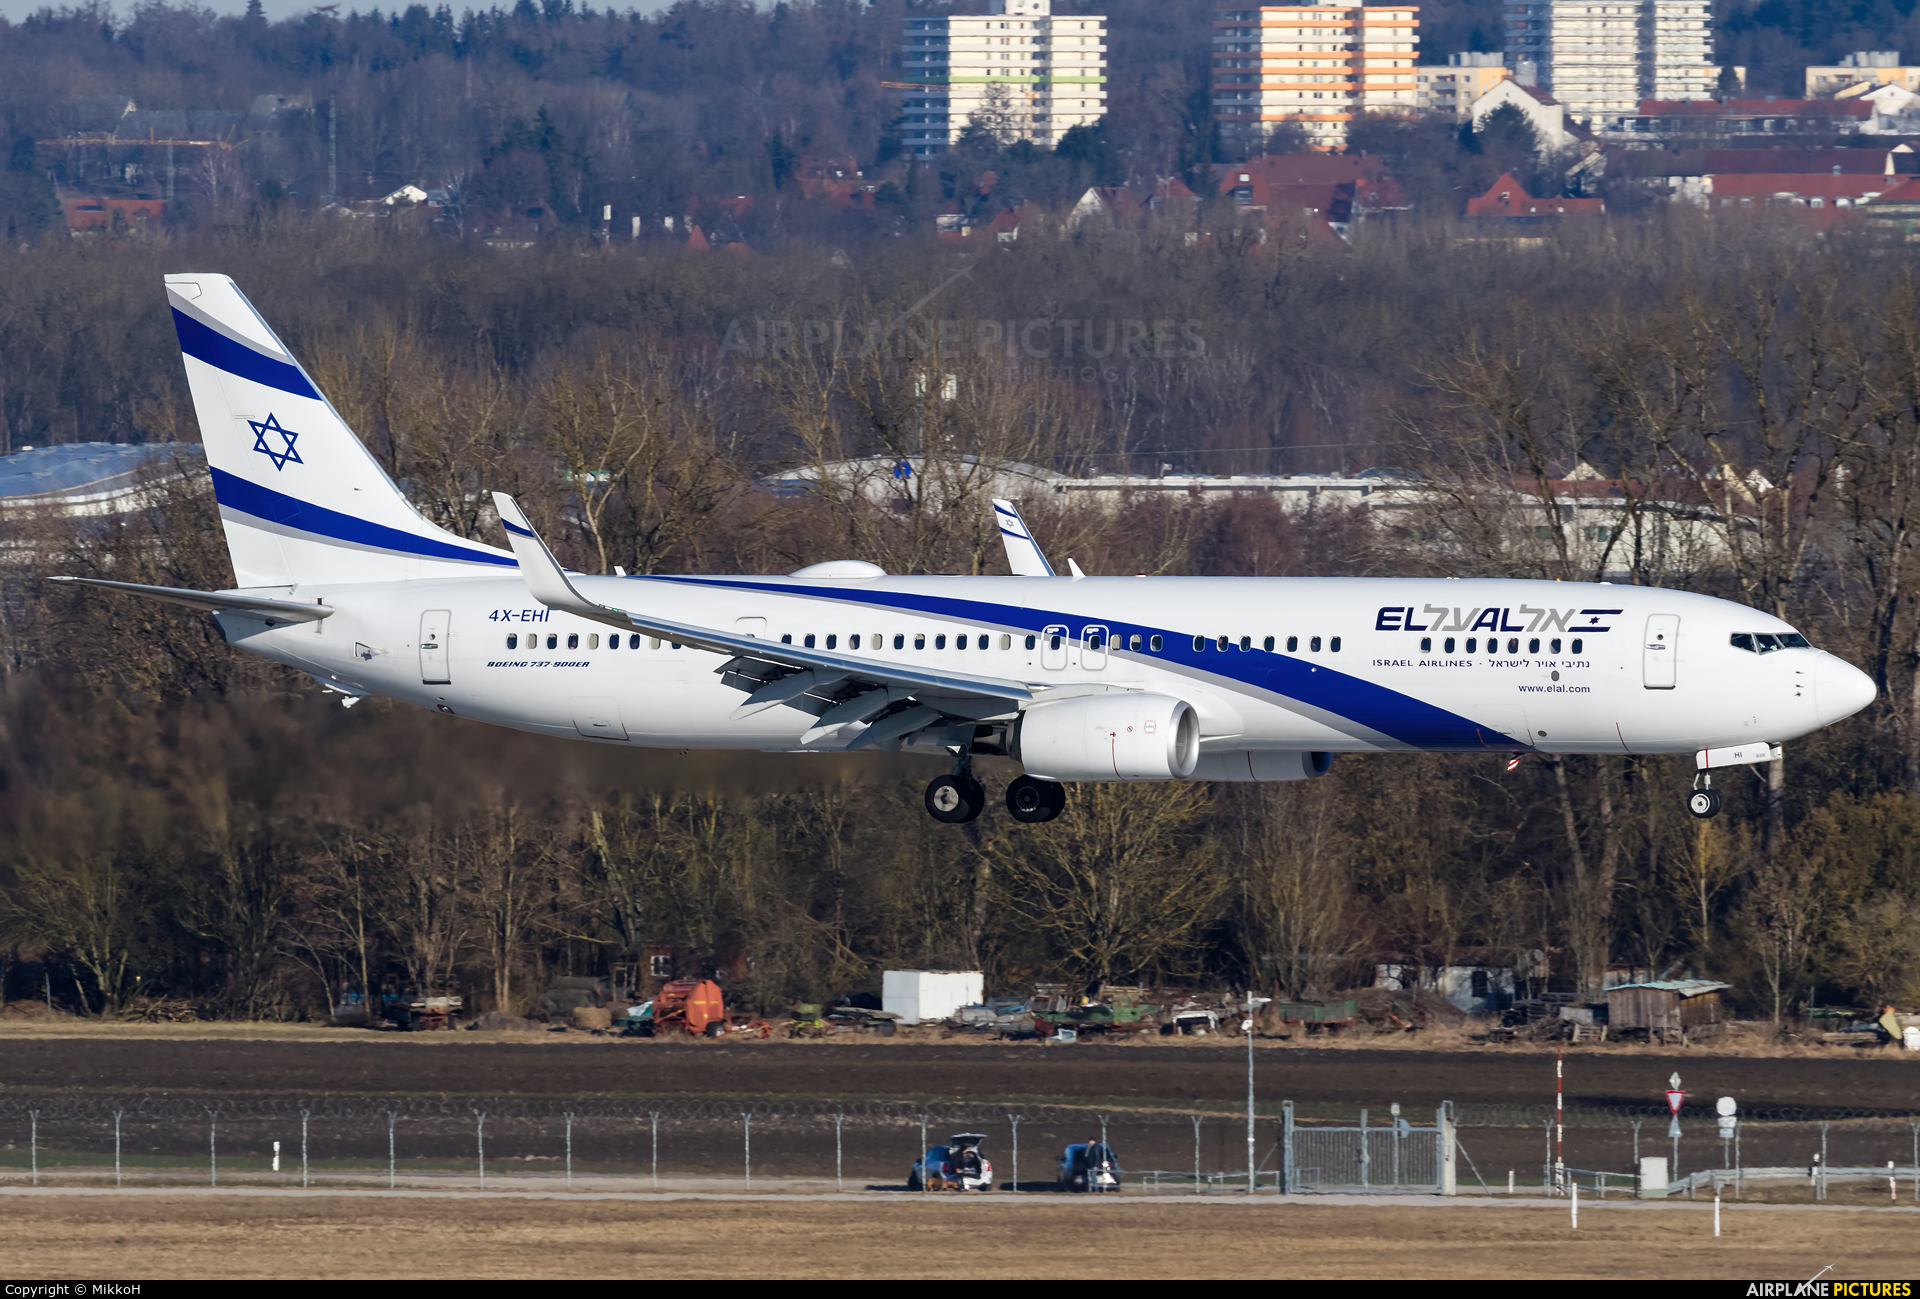 El Al Israel Airlines 4X-EHI aircraft at Munich